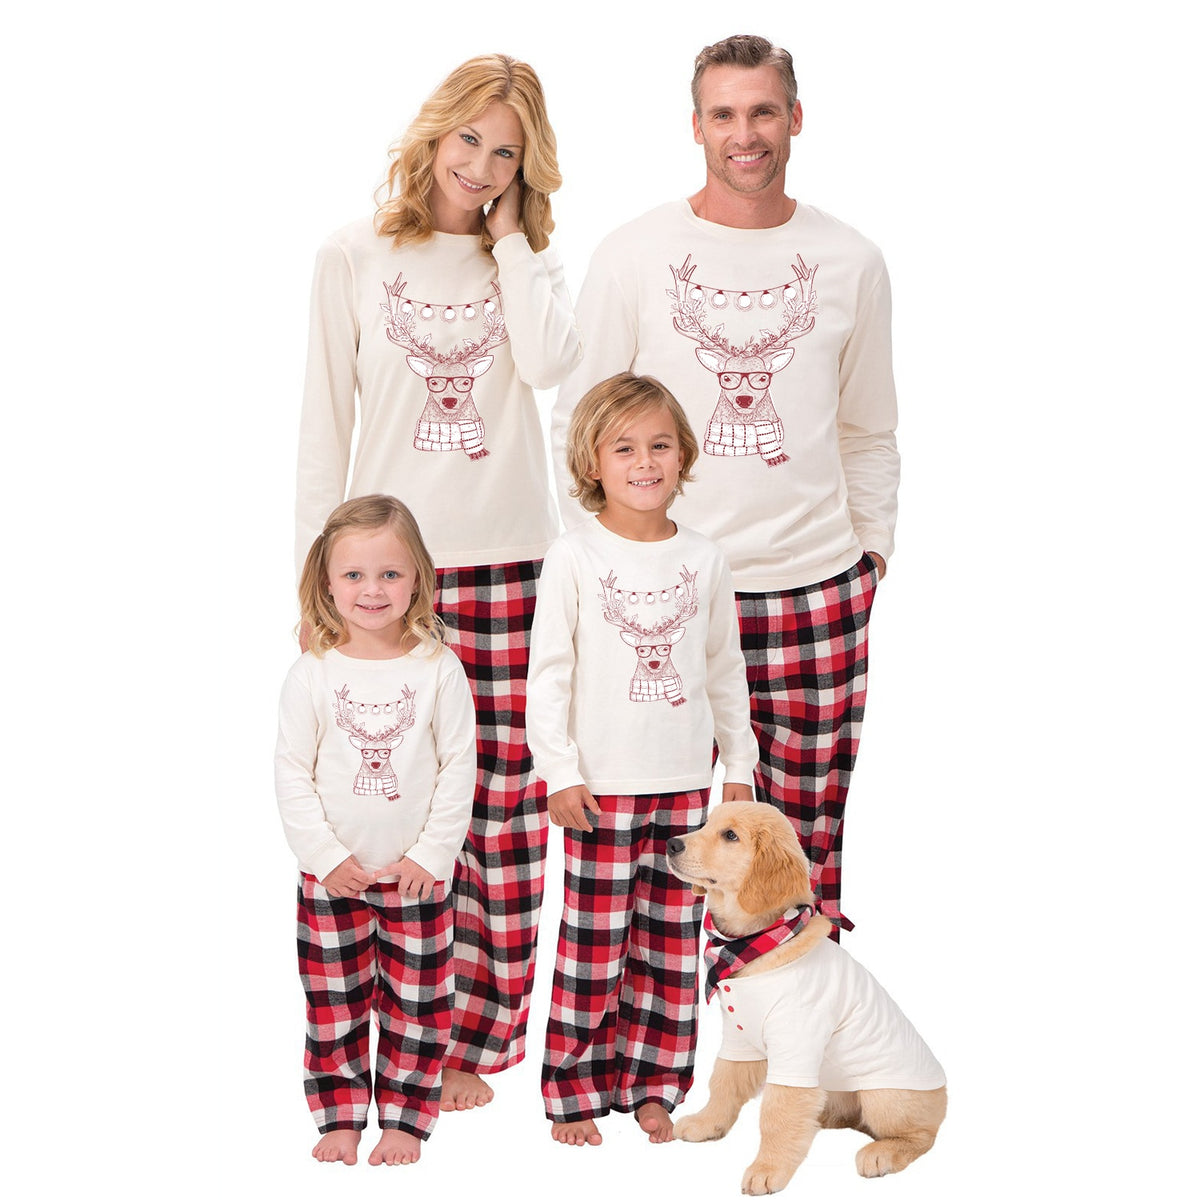 Family Matching Clothes Mother Baby Kids Christmas Pajamas Lantern Sleepwear Outfits